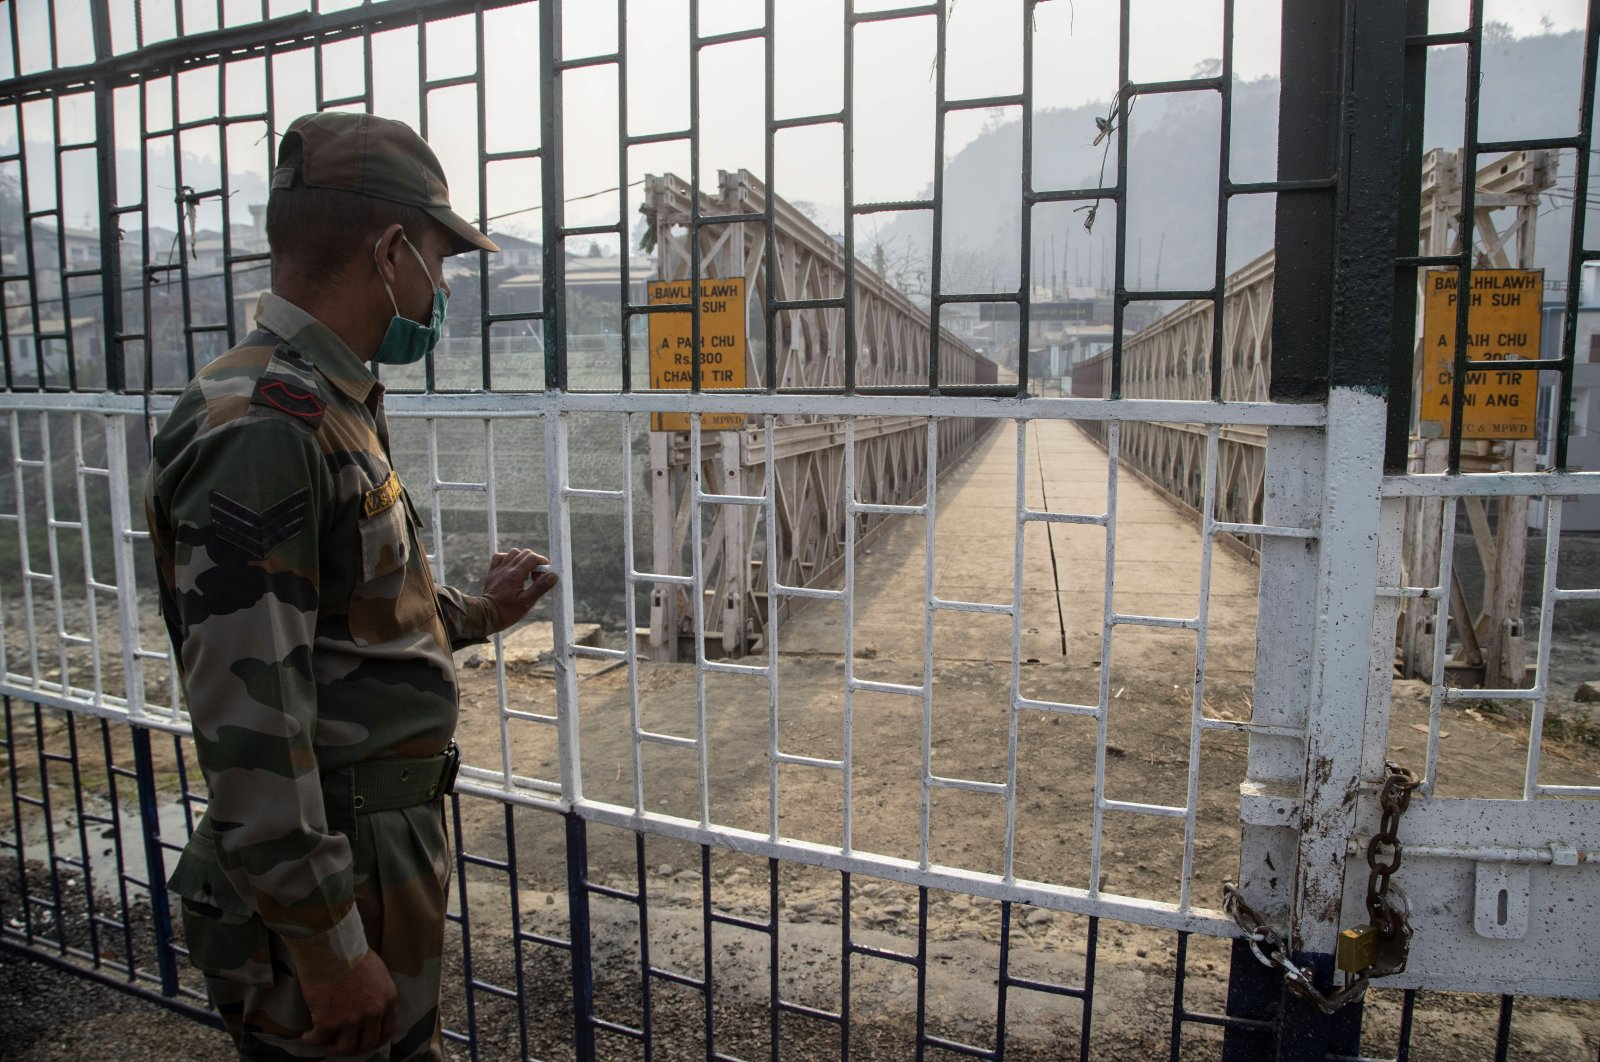 An Indian paramilitary soldier stands guard near the bridge on the Tiau river along the India-Myanmar border in Mizoram, India, March 20, 2021. (AP Photo)